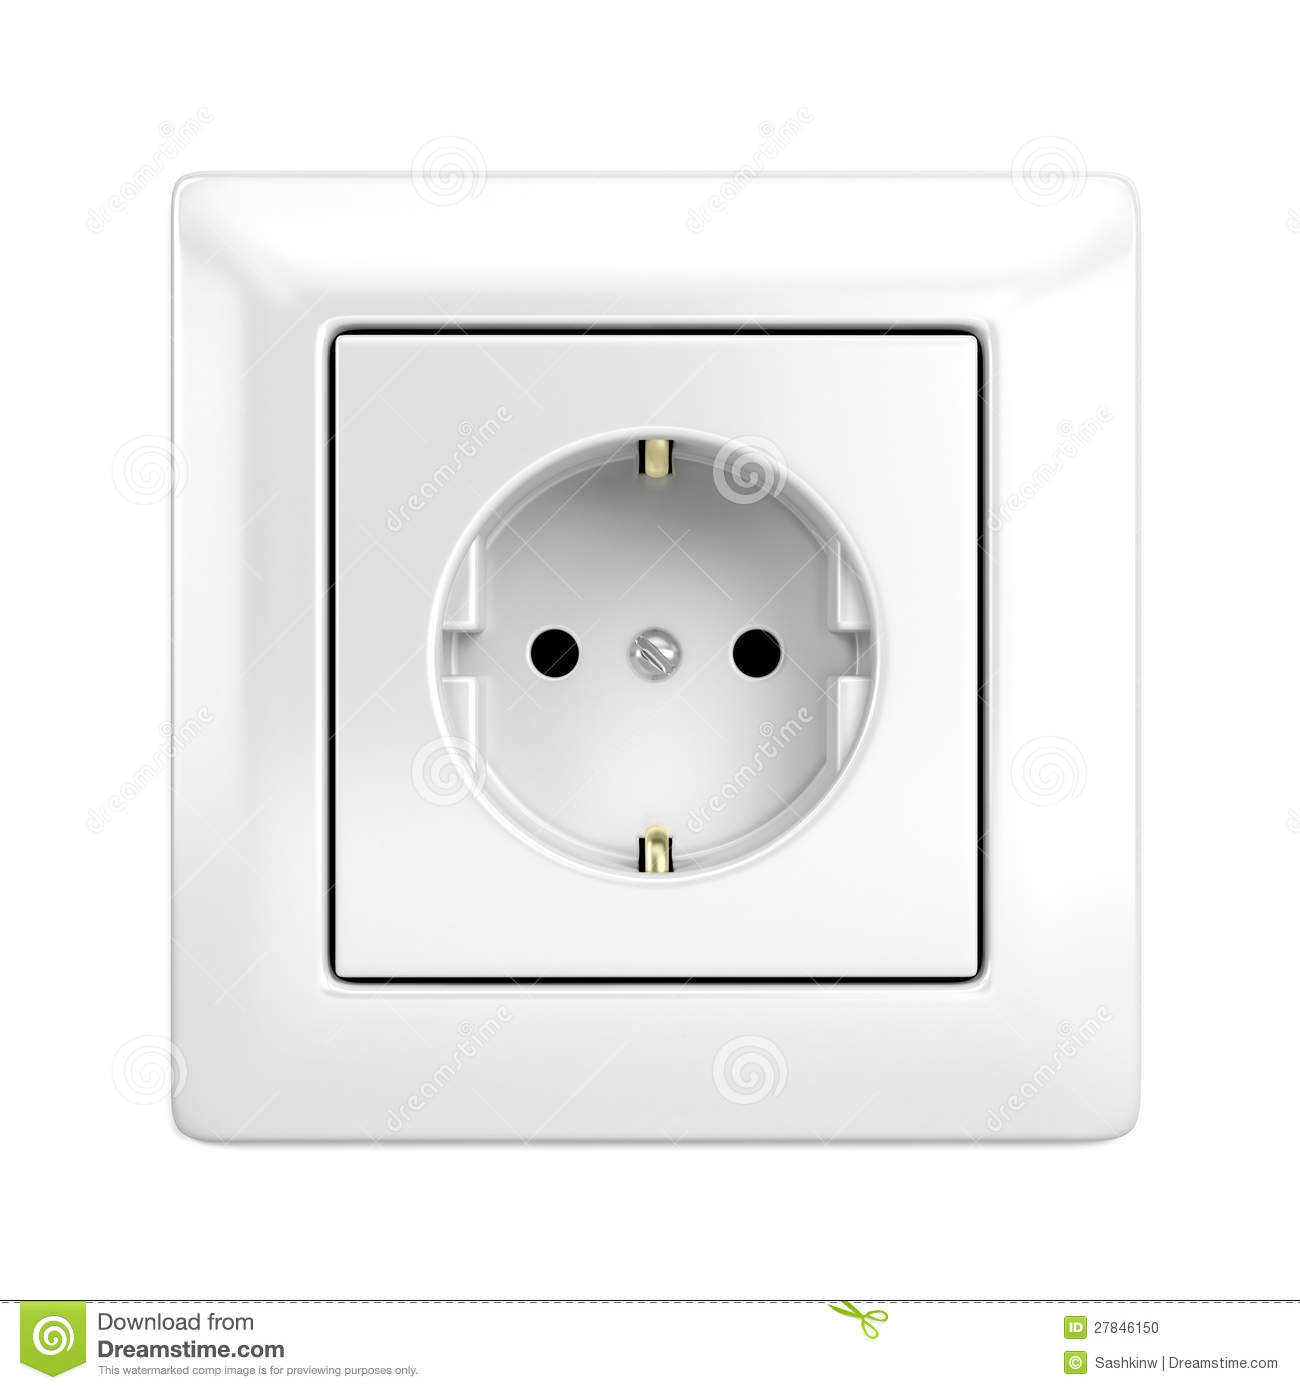 European wall outlet stock illustration. Illustration of close ...